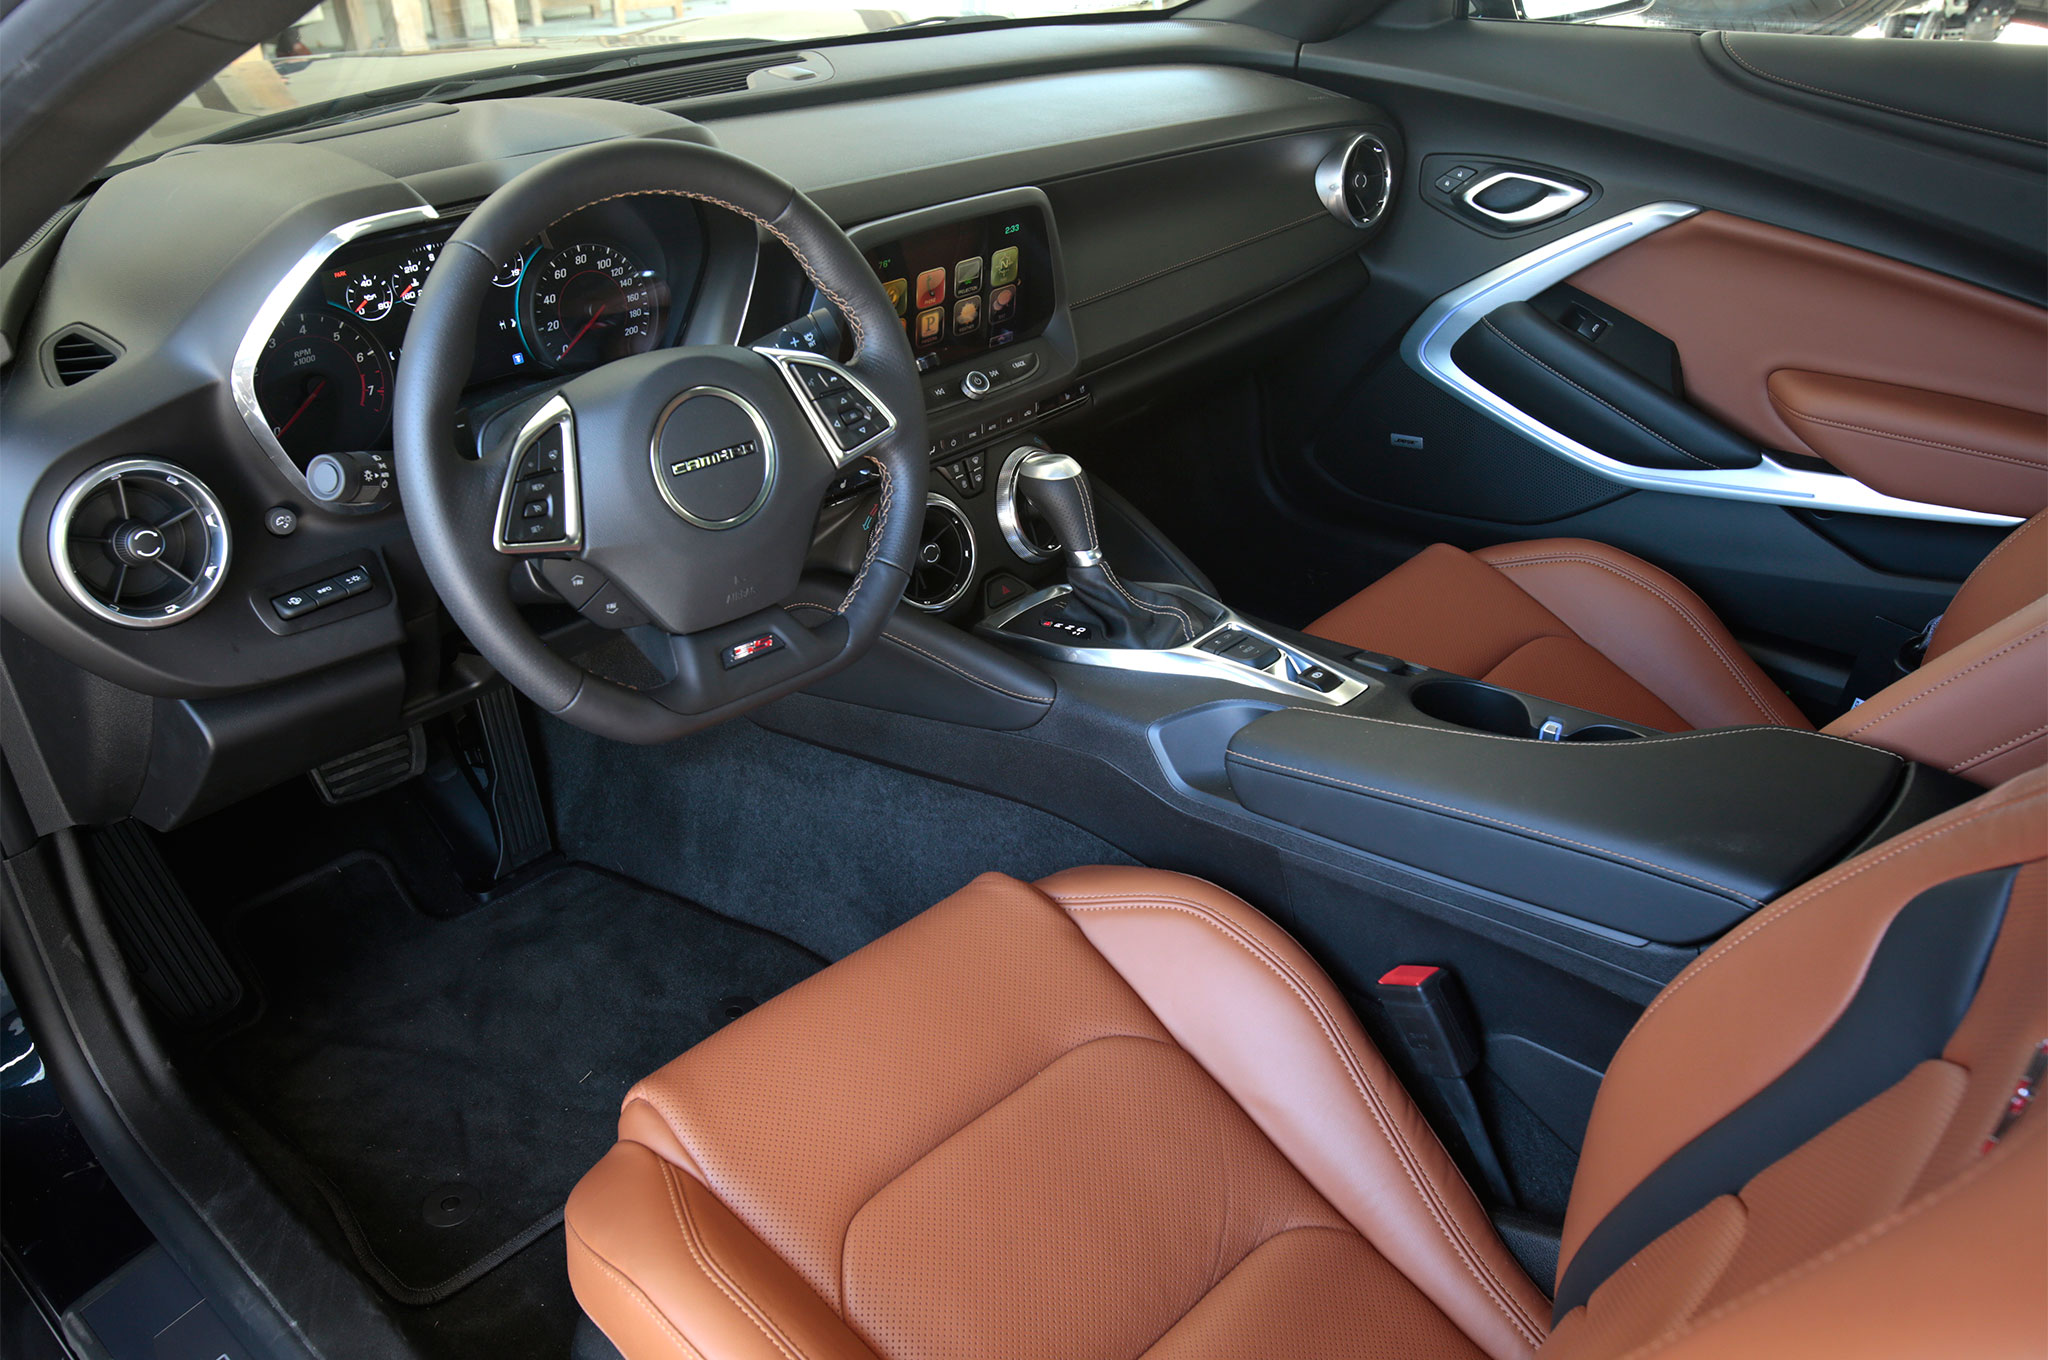 The black eight-speed SS we drove had the Kalahari leather interior. Red and white leather accents are also offered, for a wide variety of paint and interior options.